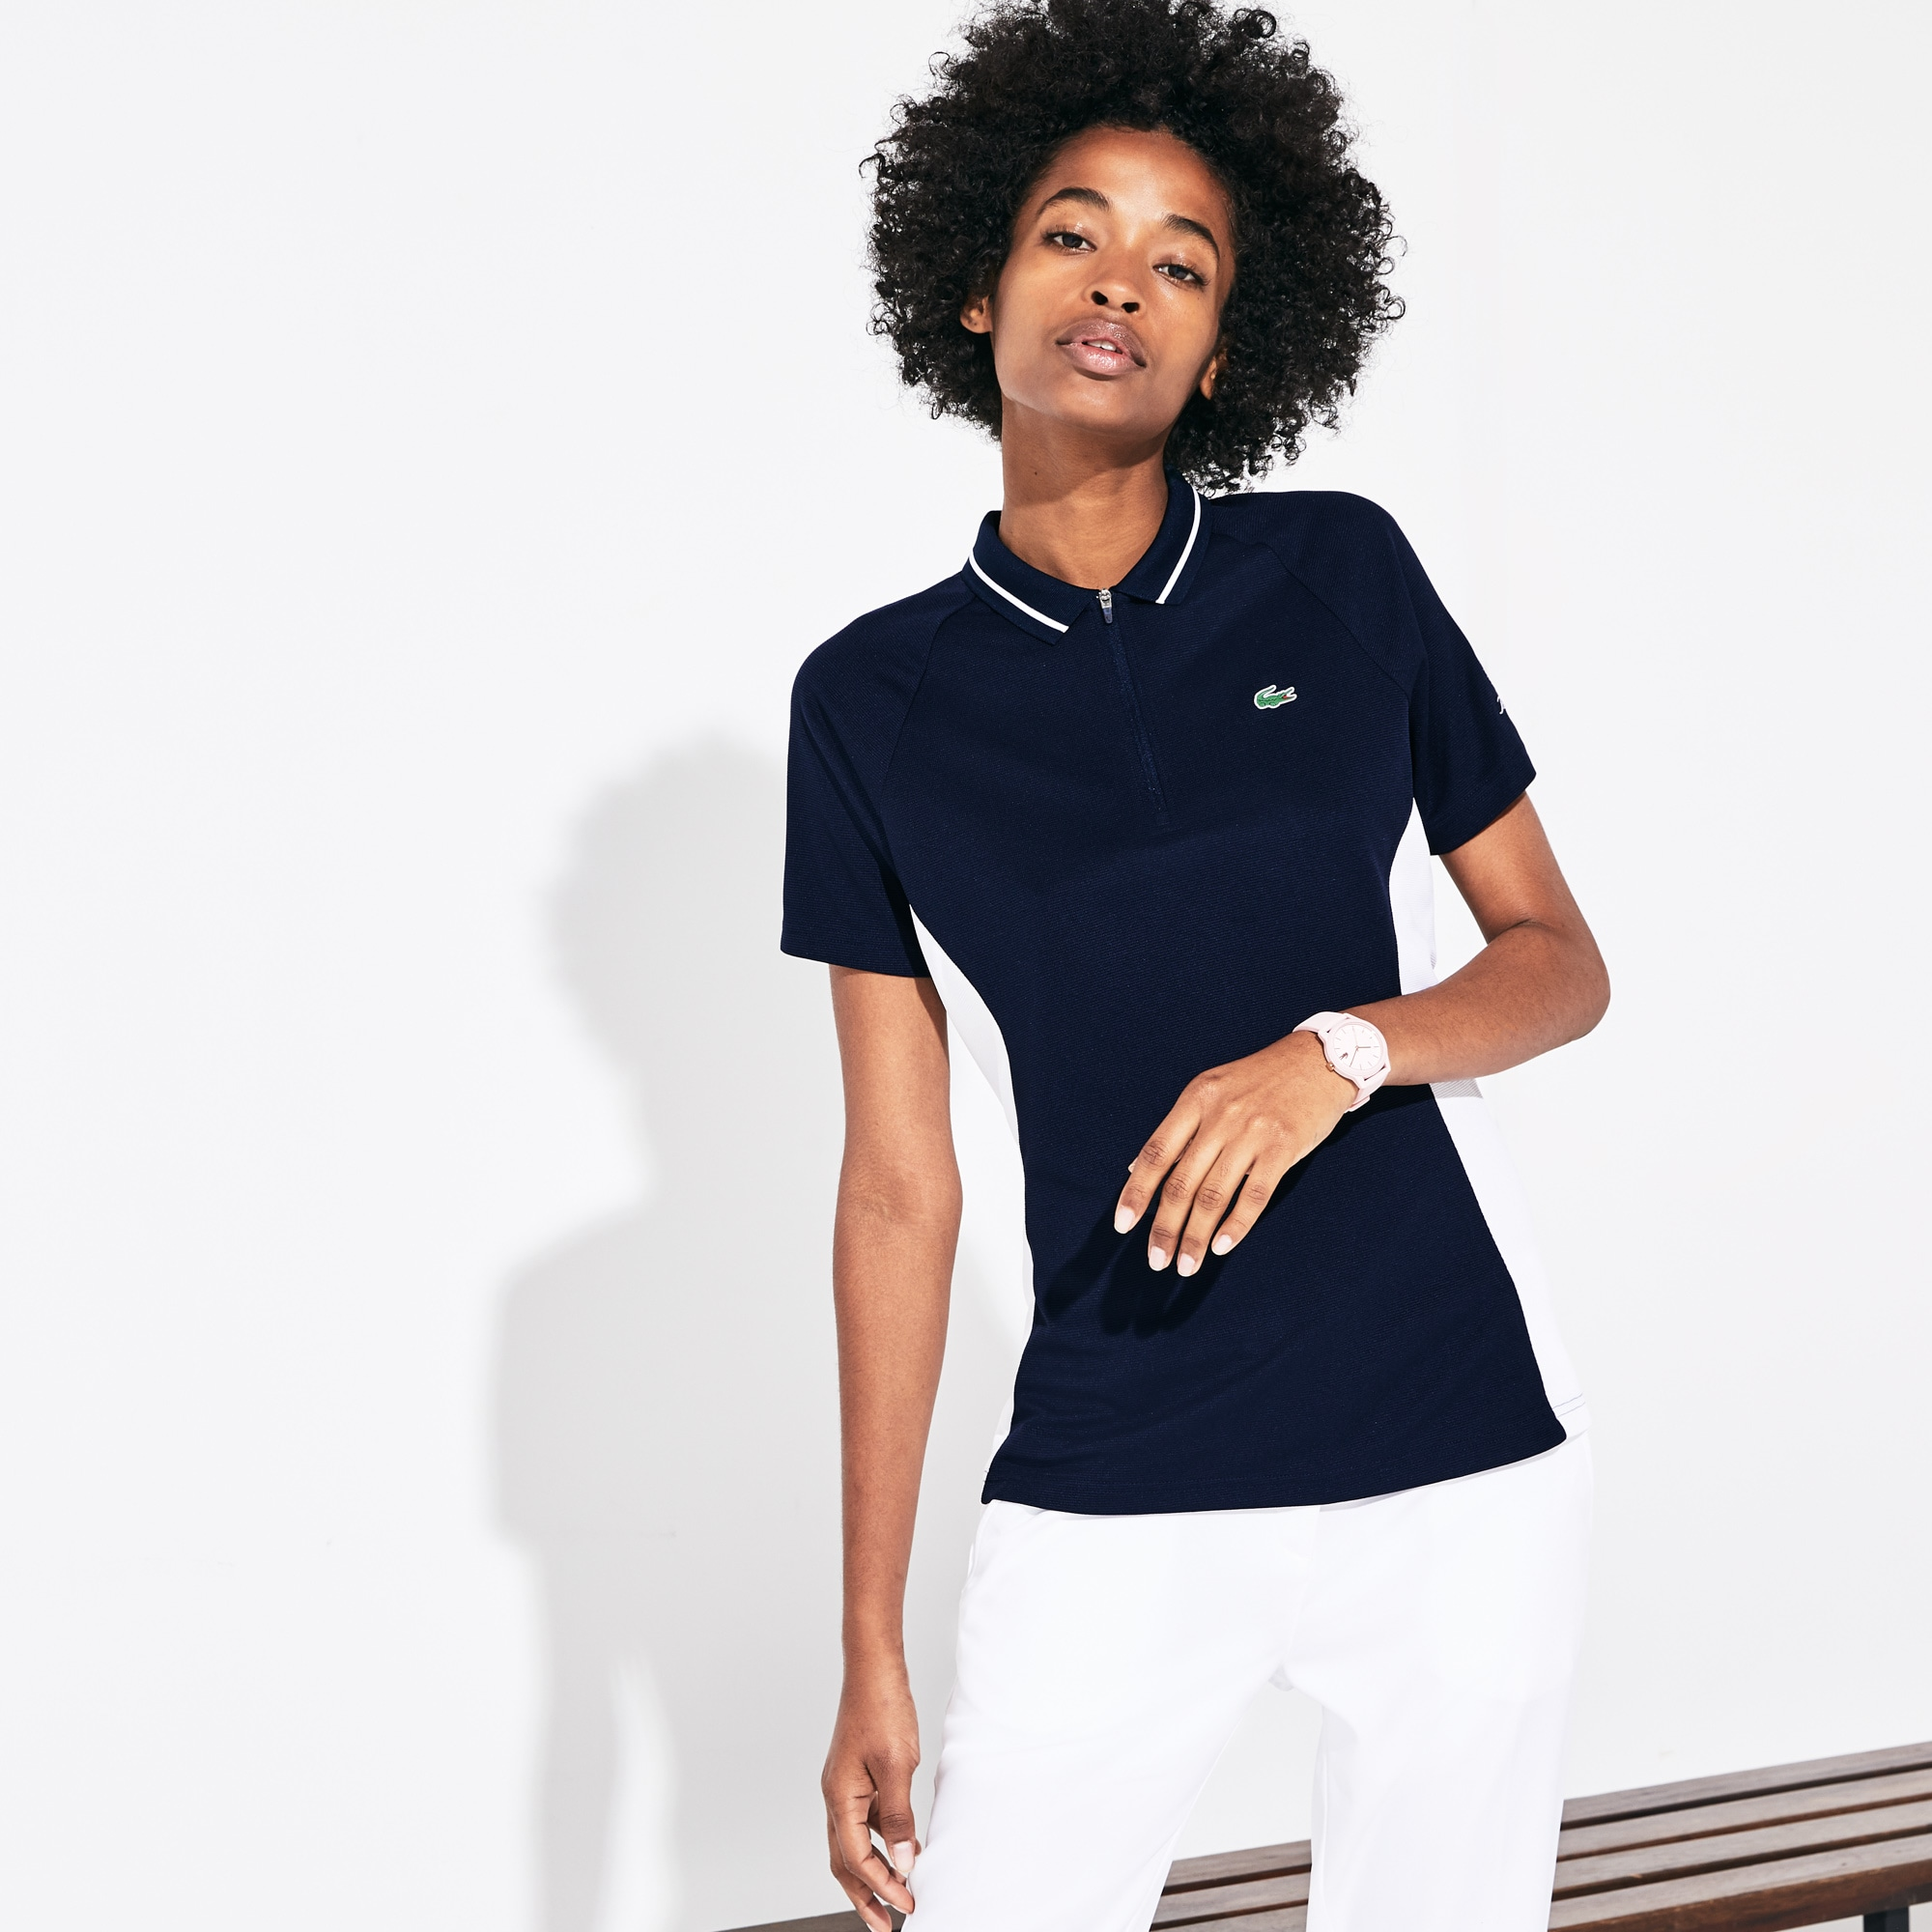 Damen Presidents Cup Golf-Poloshirt mit Colourblocks